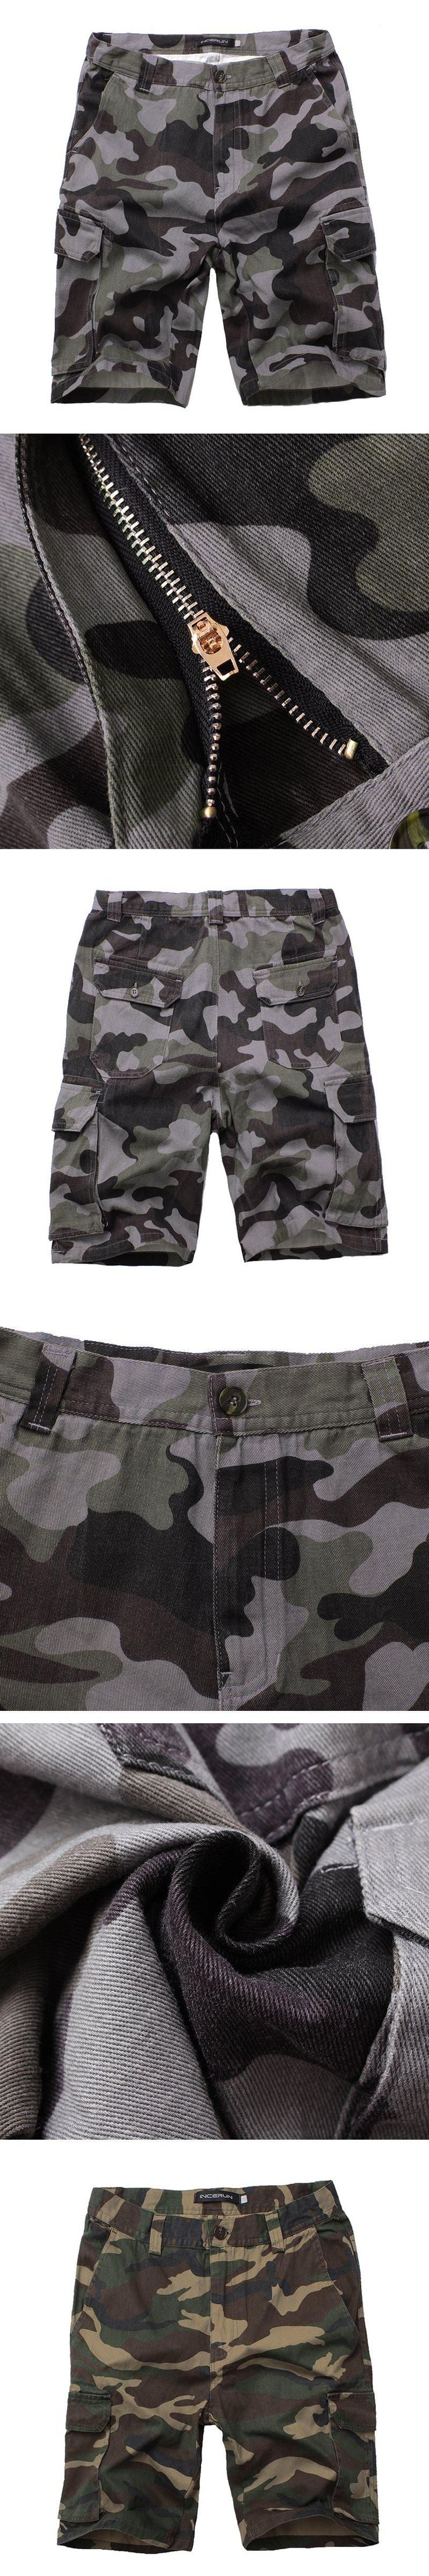 Camouflage Camo Cargo Shorts Men Fashion Casual Shorts Male Loose Work Shorts Man Military Tactical Short Trousers Plus Size 44